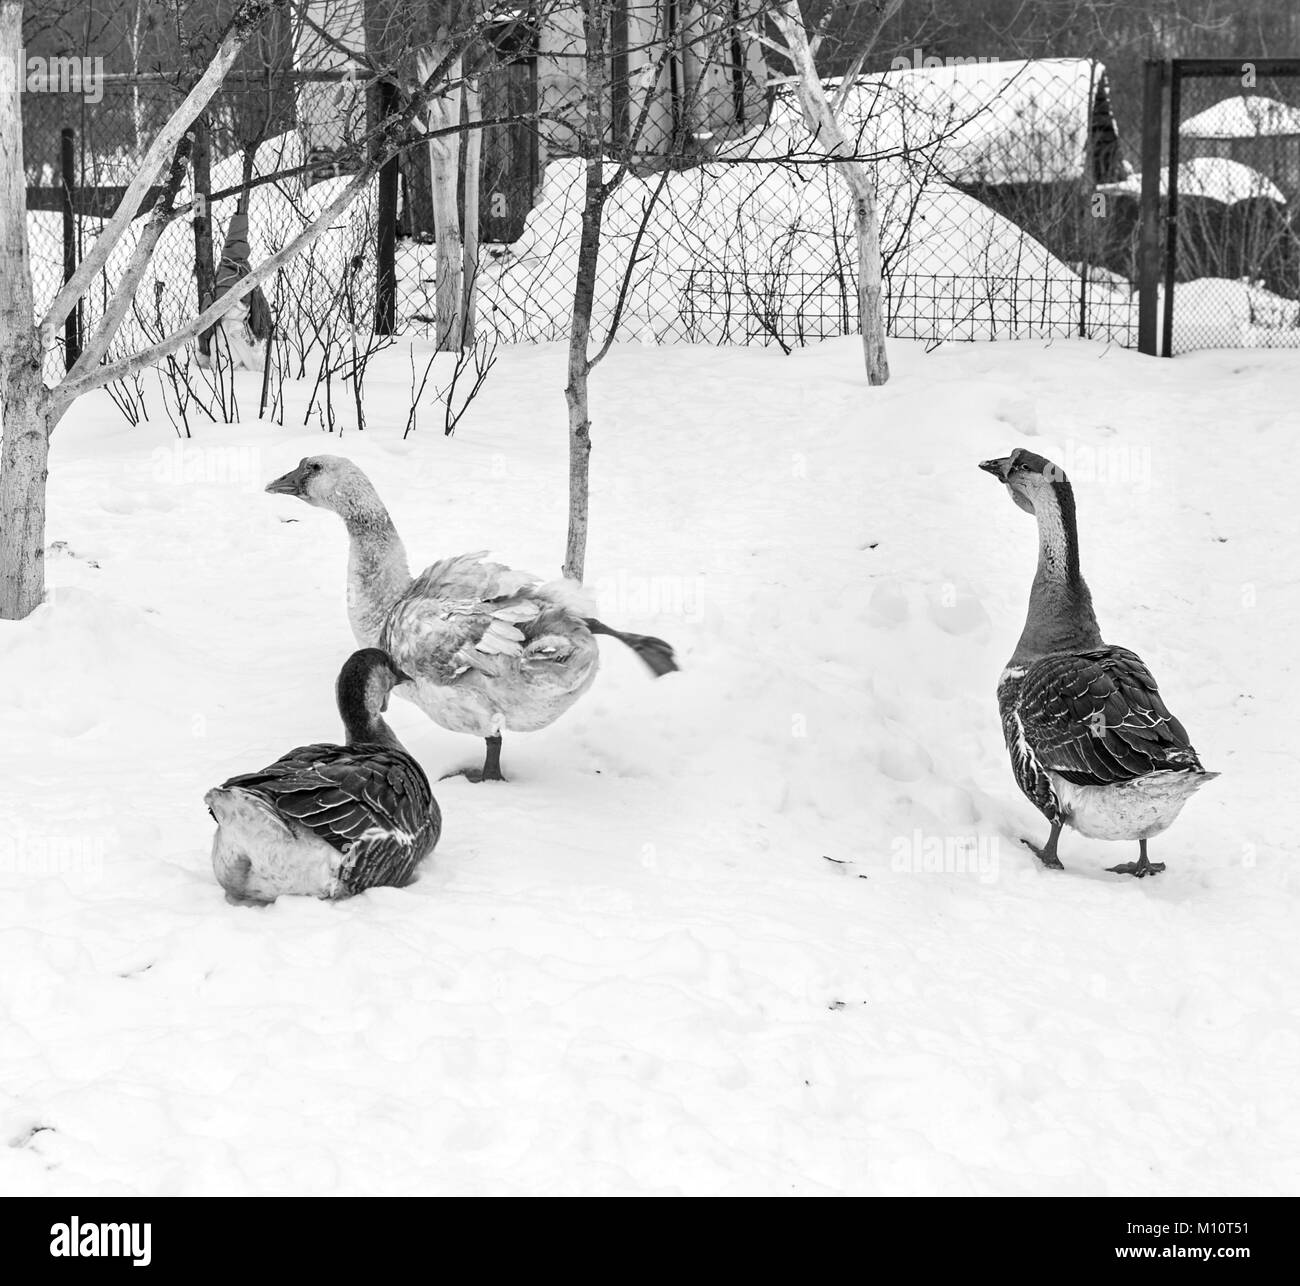 Three geese in snow at winter cloudy day in black and white - Stock Image